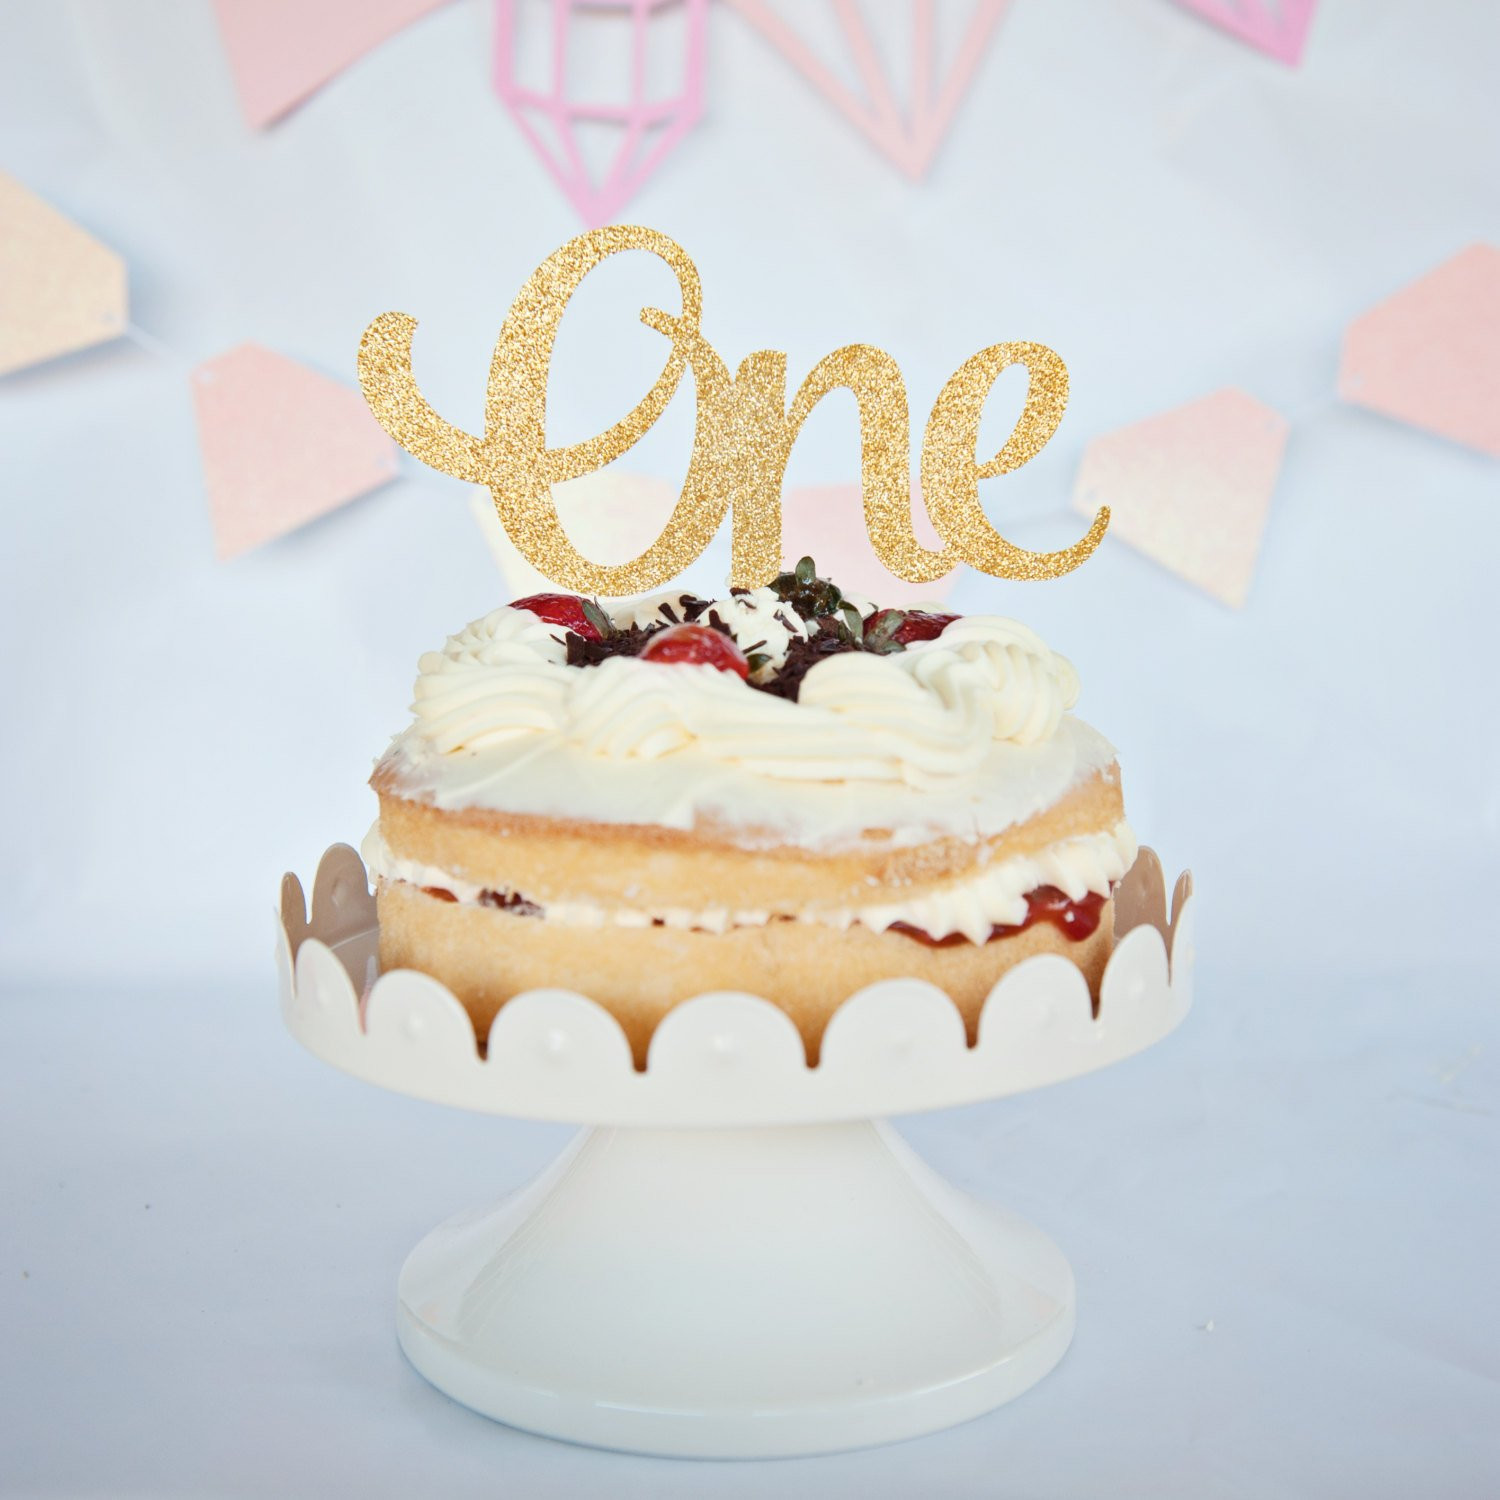 Best ideas about 1st Birthday Cake Topper . Save or Pin e cake topper first birthday cake topper 1st birthday cake Now.